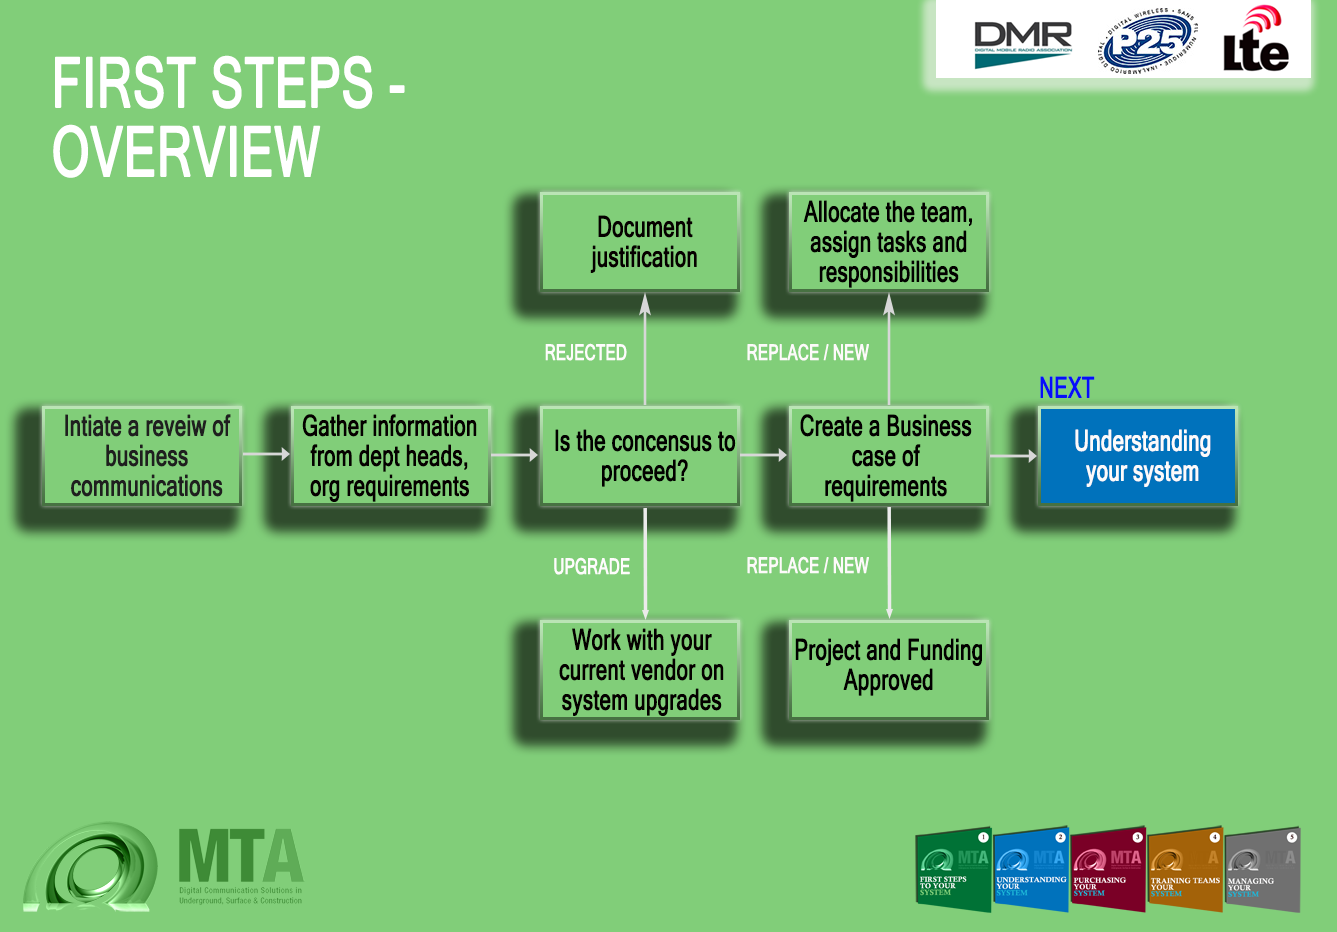 First Steps Overview